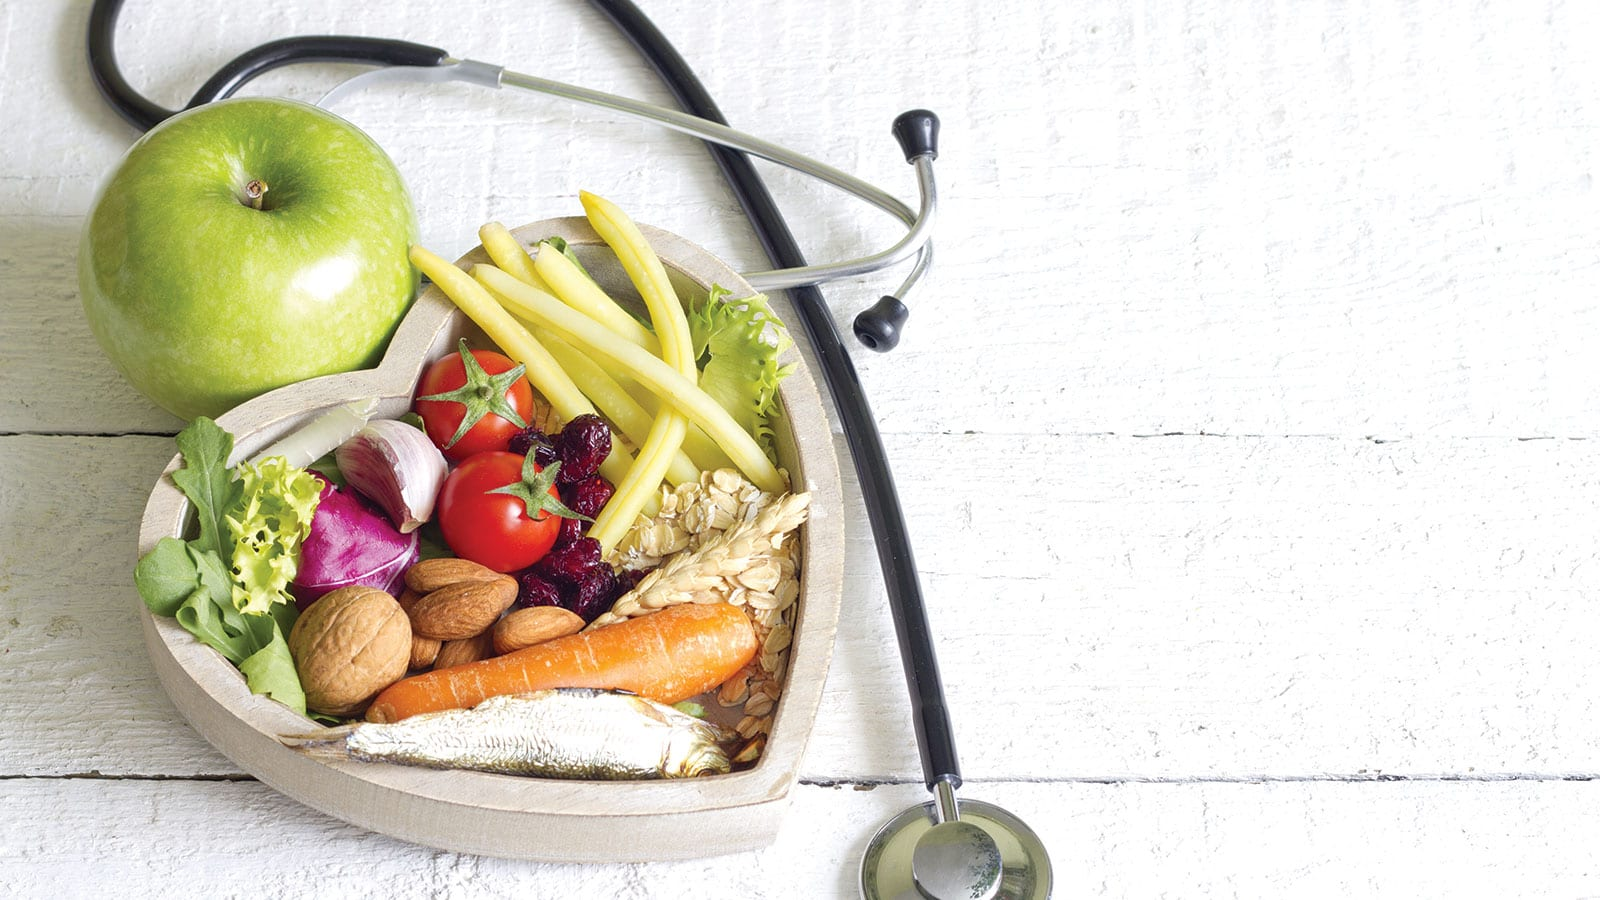 Nutritious fresh foods and seafood in a heart-shaped wood container surrounded by a stethiscope.